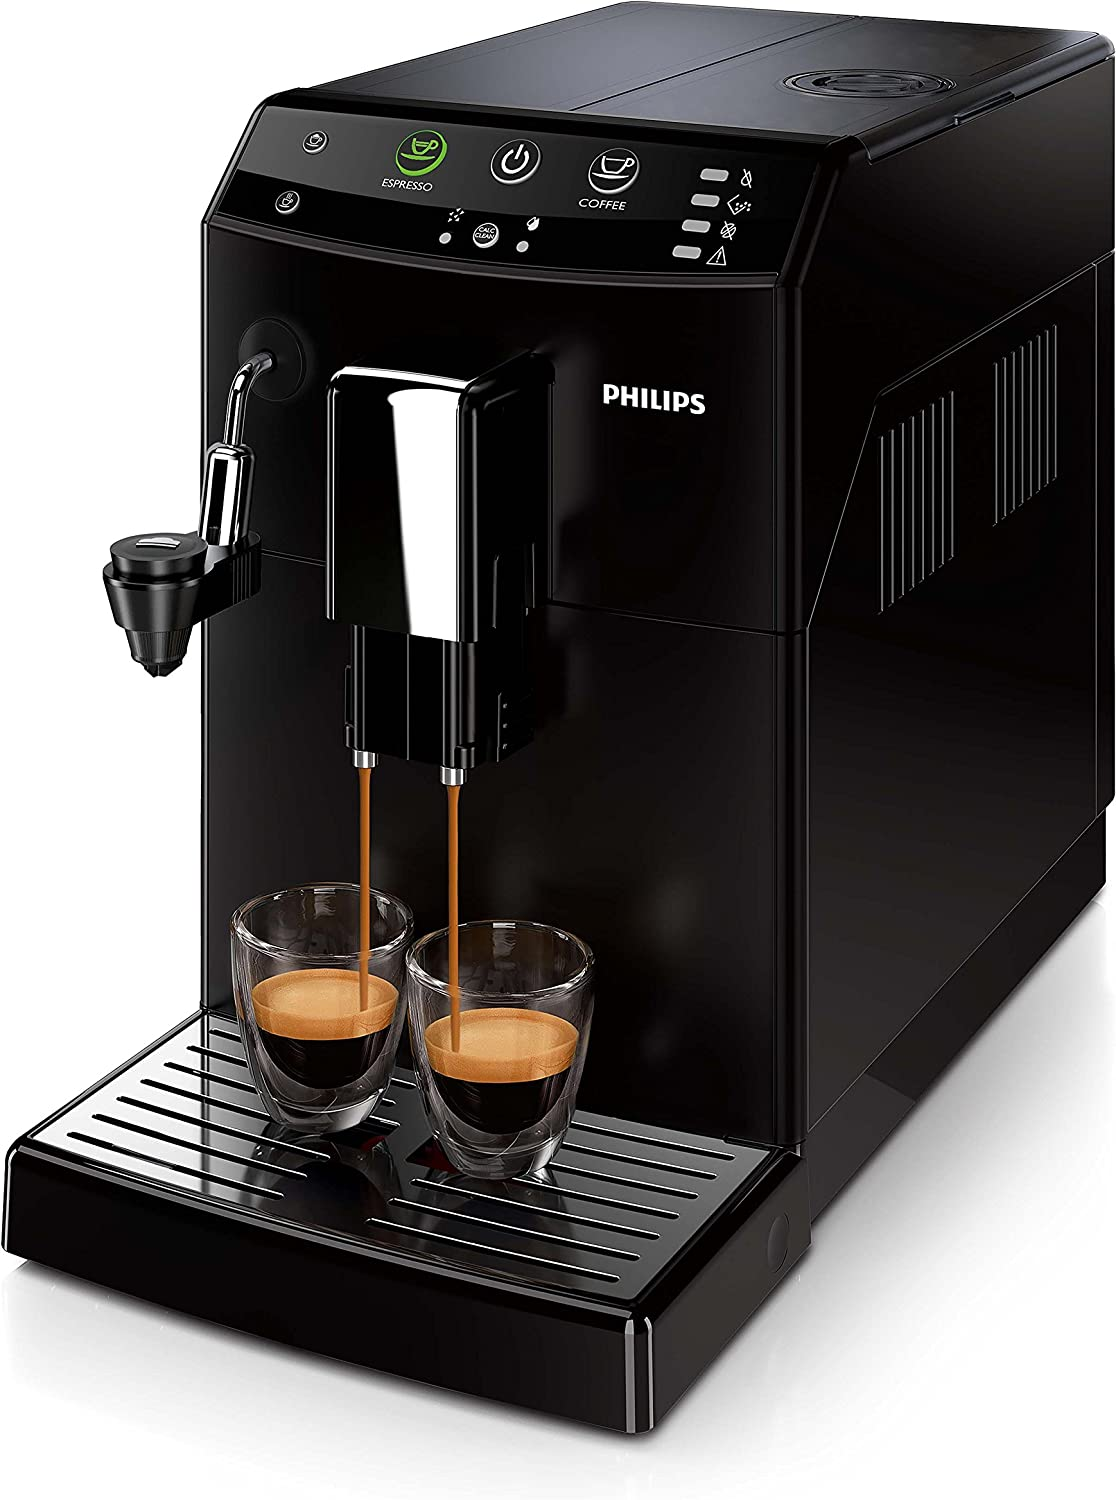 Philips 3000 series HD8824/01 - Cafetera (Independiente, Máquina espresso, 1,8 L, Molinillo integrado, 1850 W, Negro ...